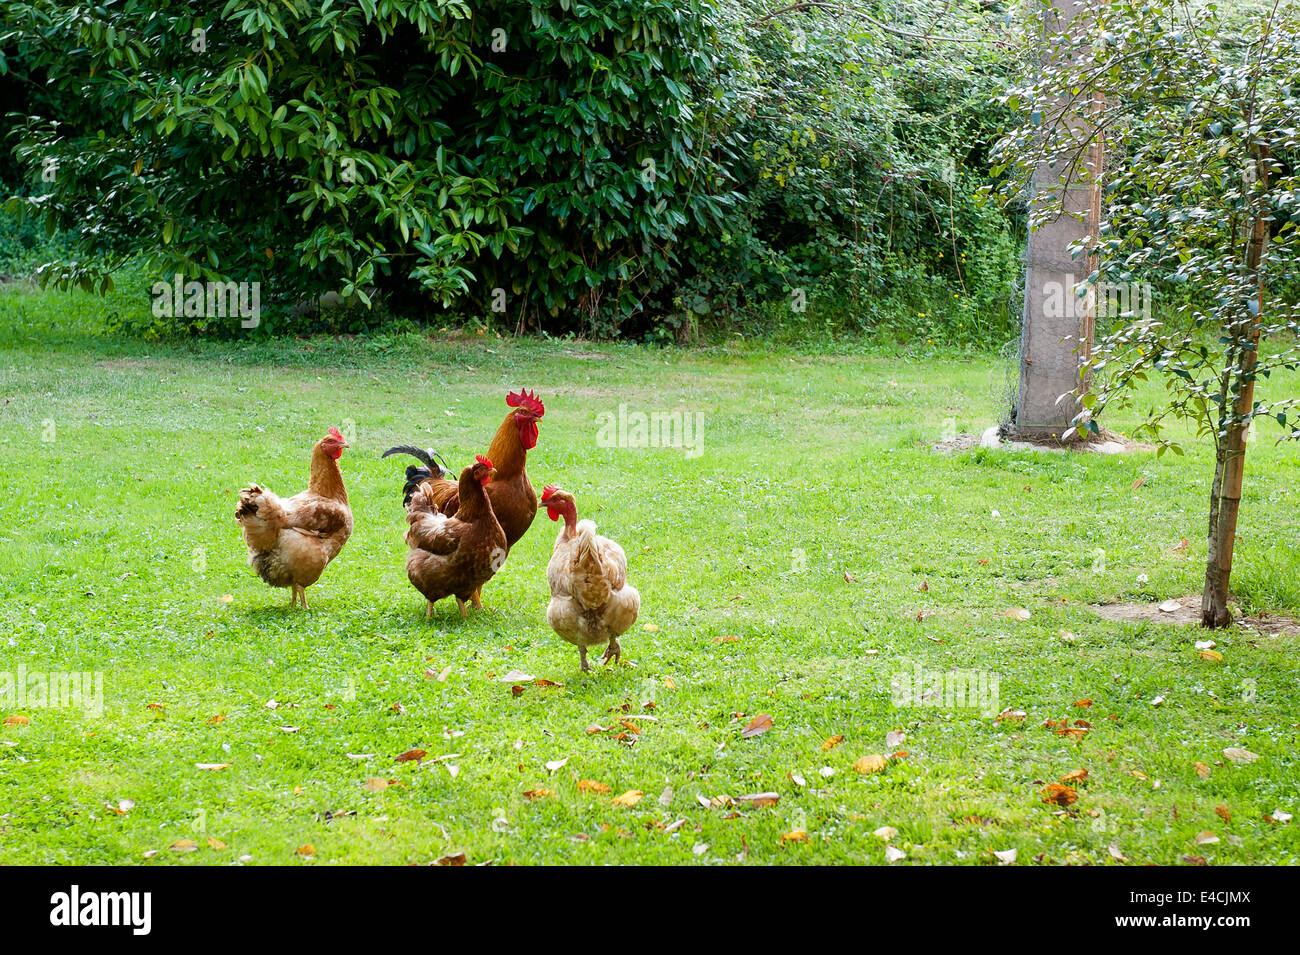 A cockerel and his hens on grass lawn - Stock Image